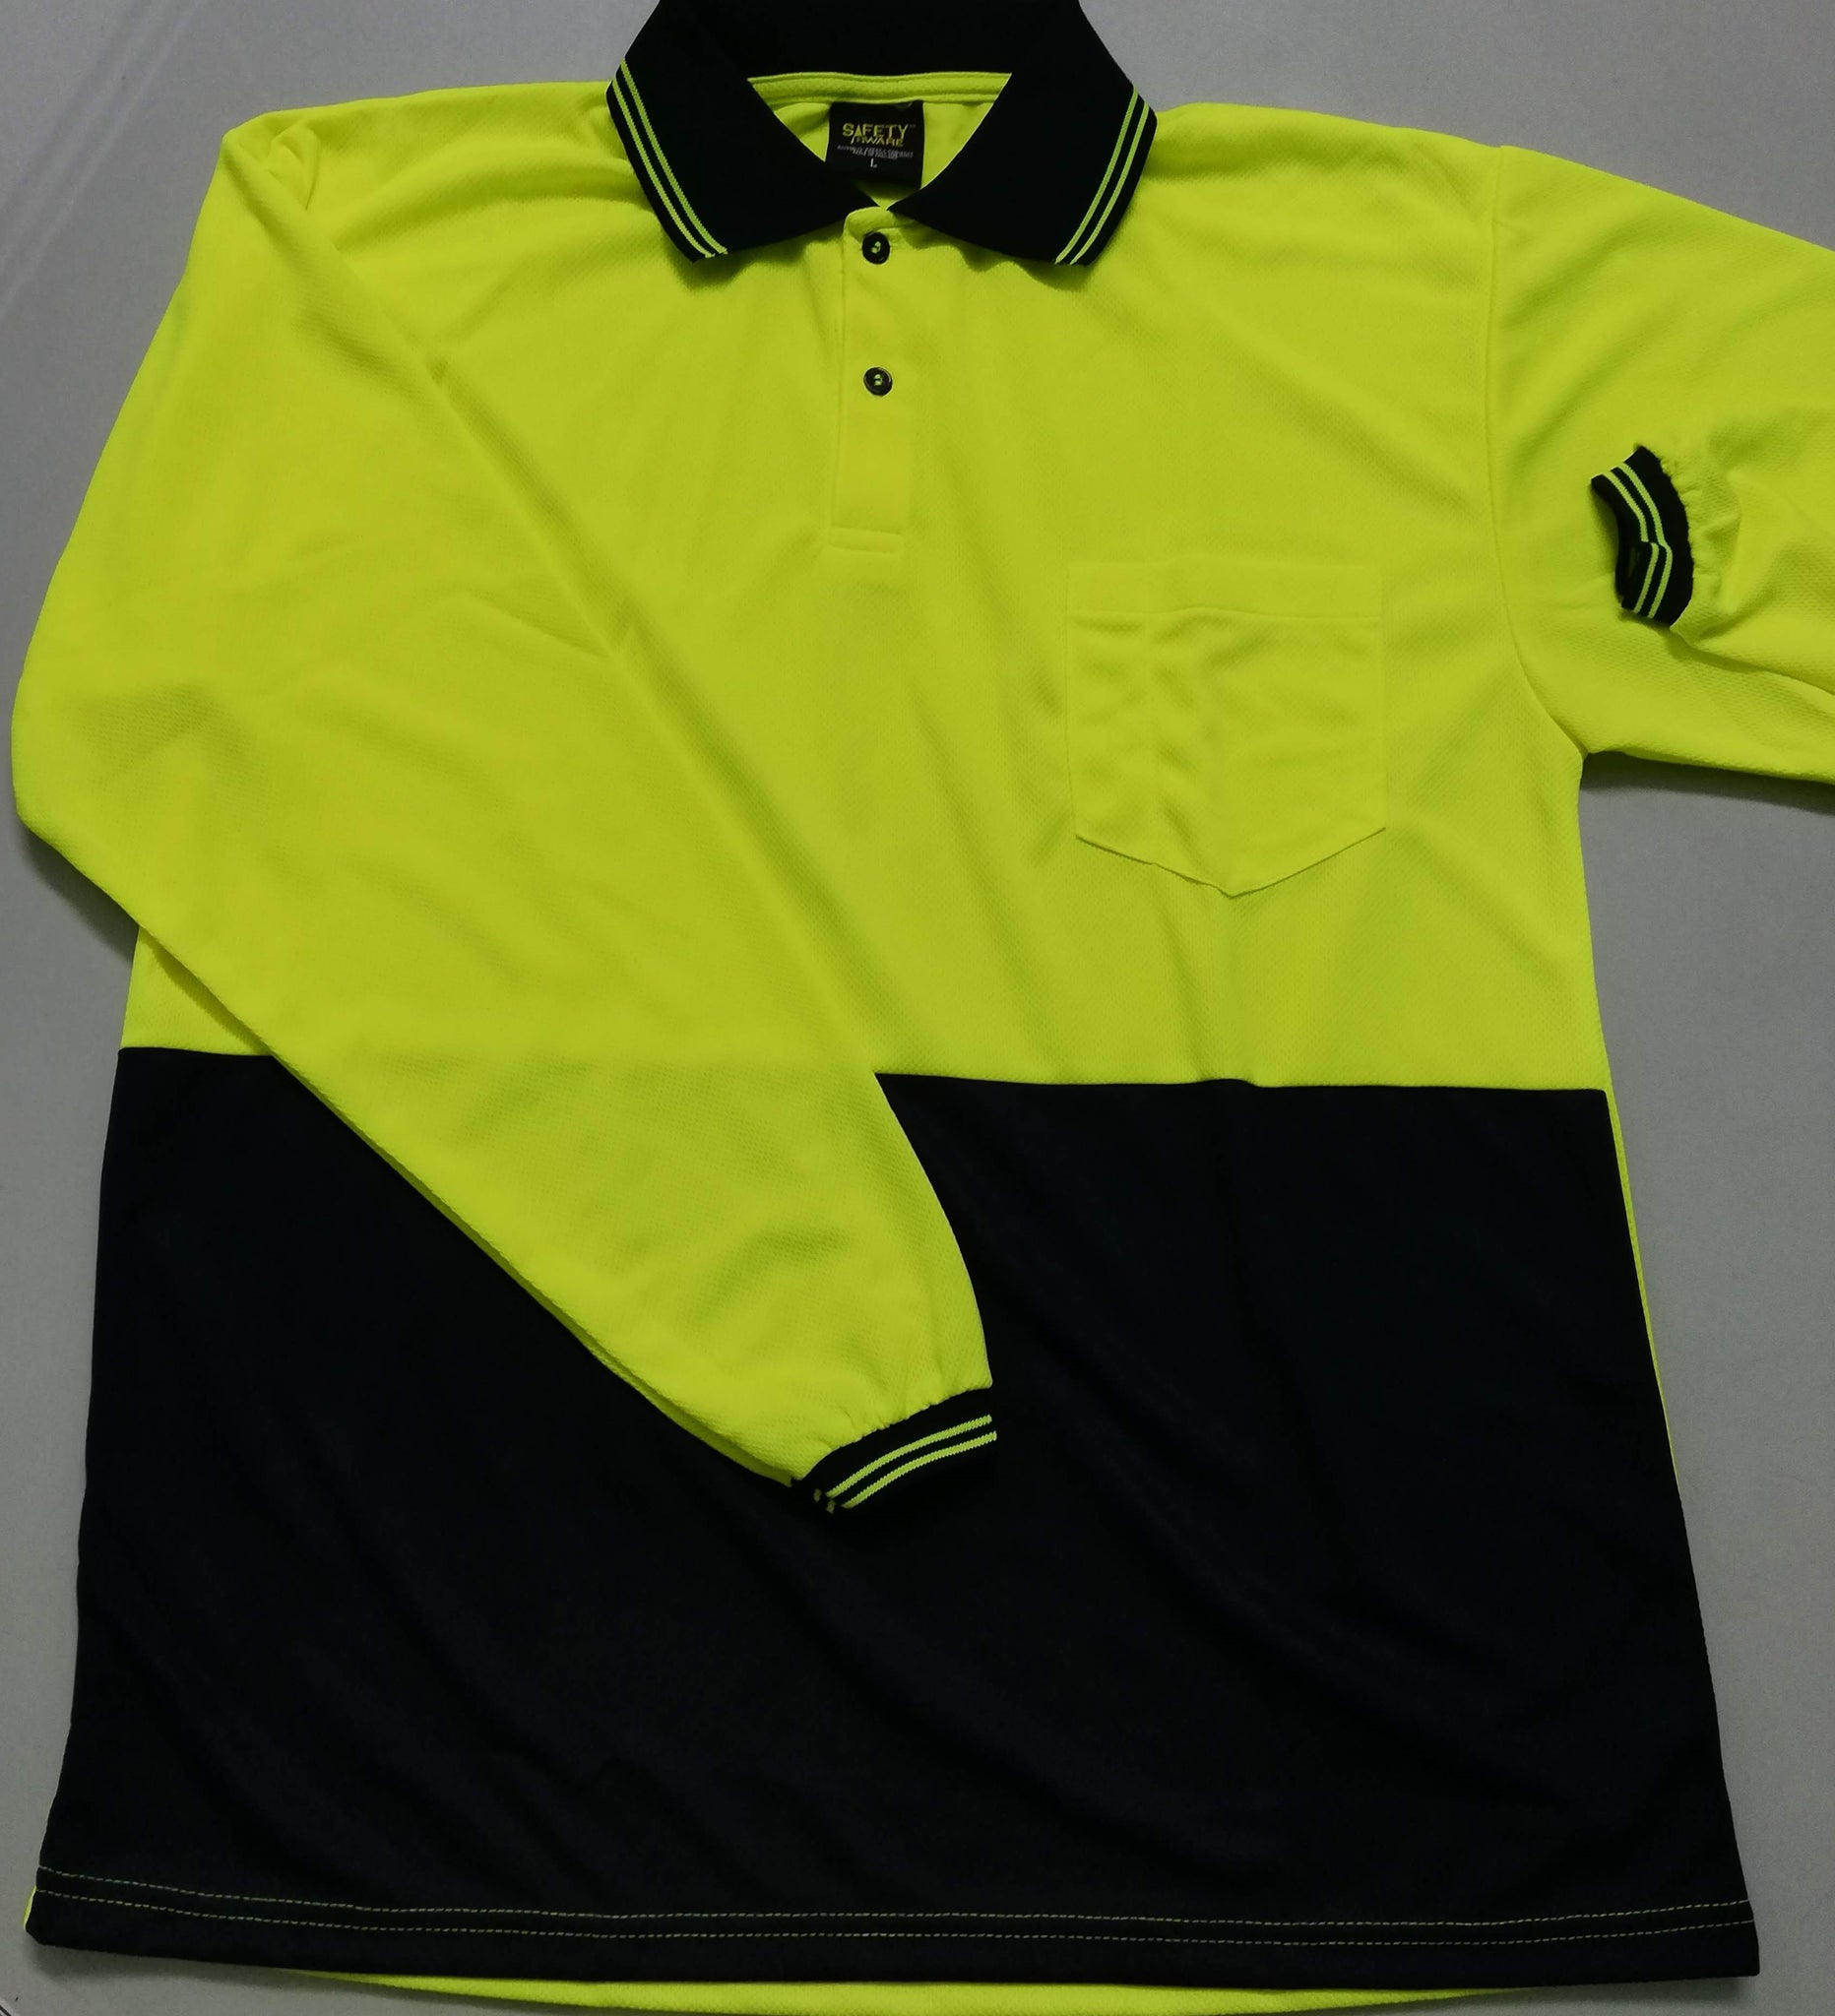 HIVis Long Sleeve Polo Shirt with Pocket - Yellow/Navy